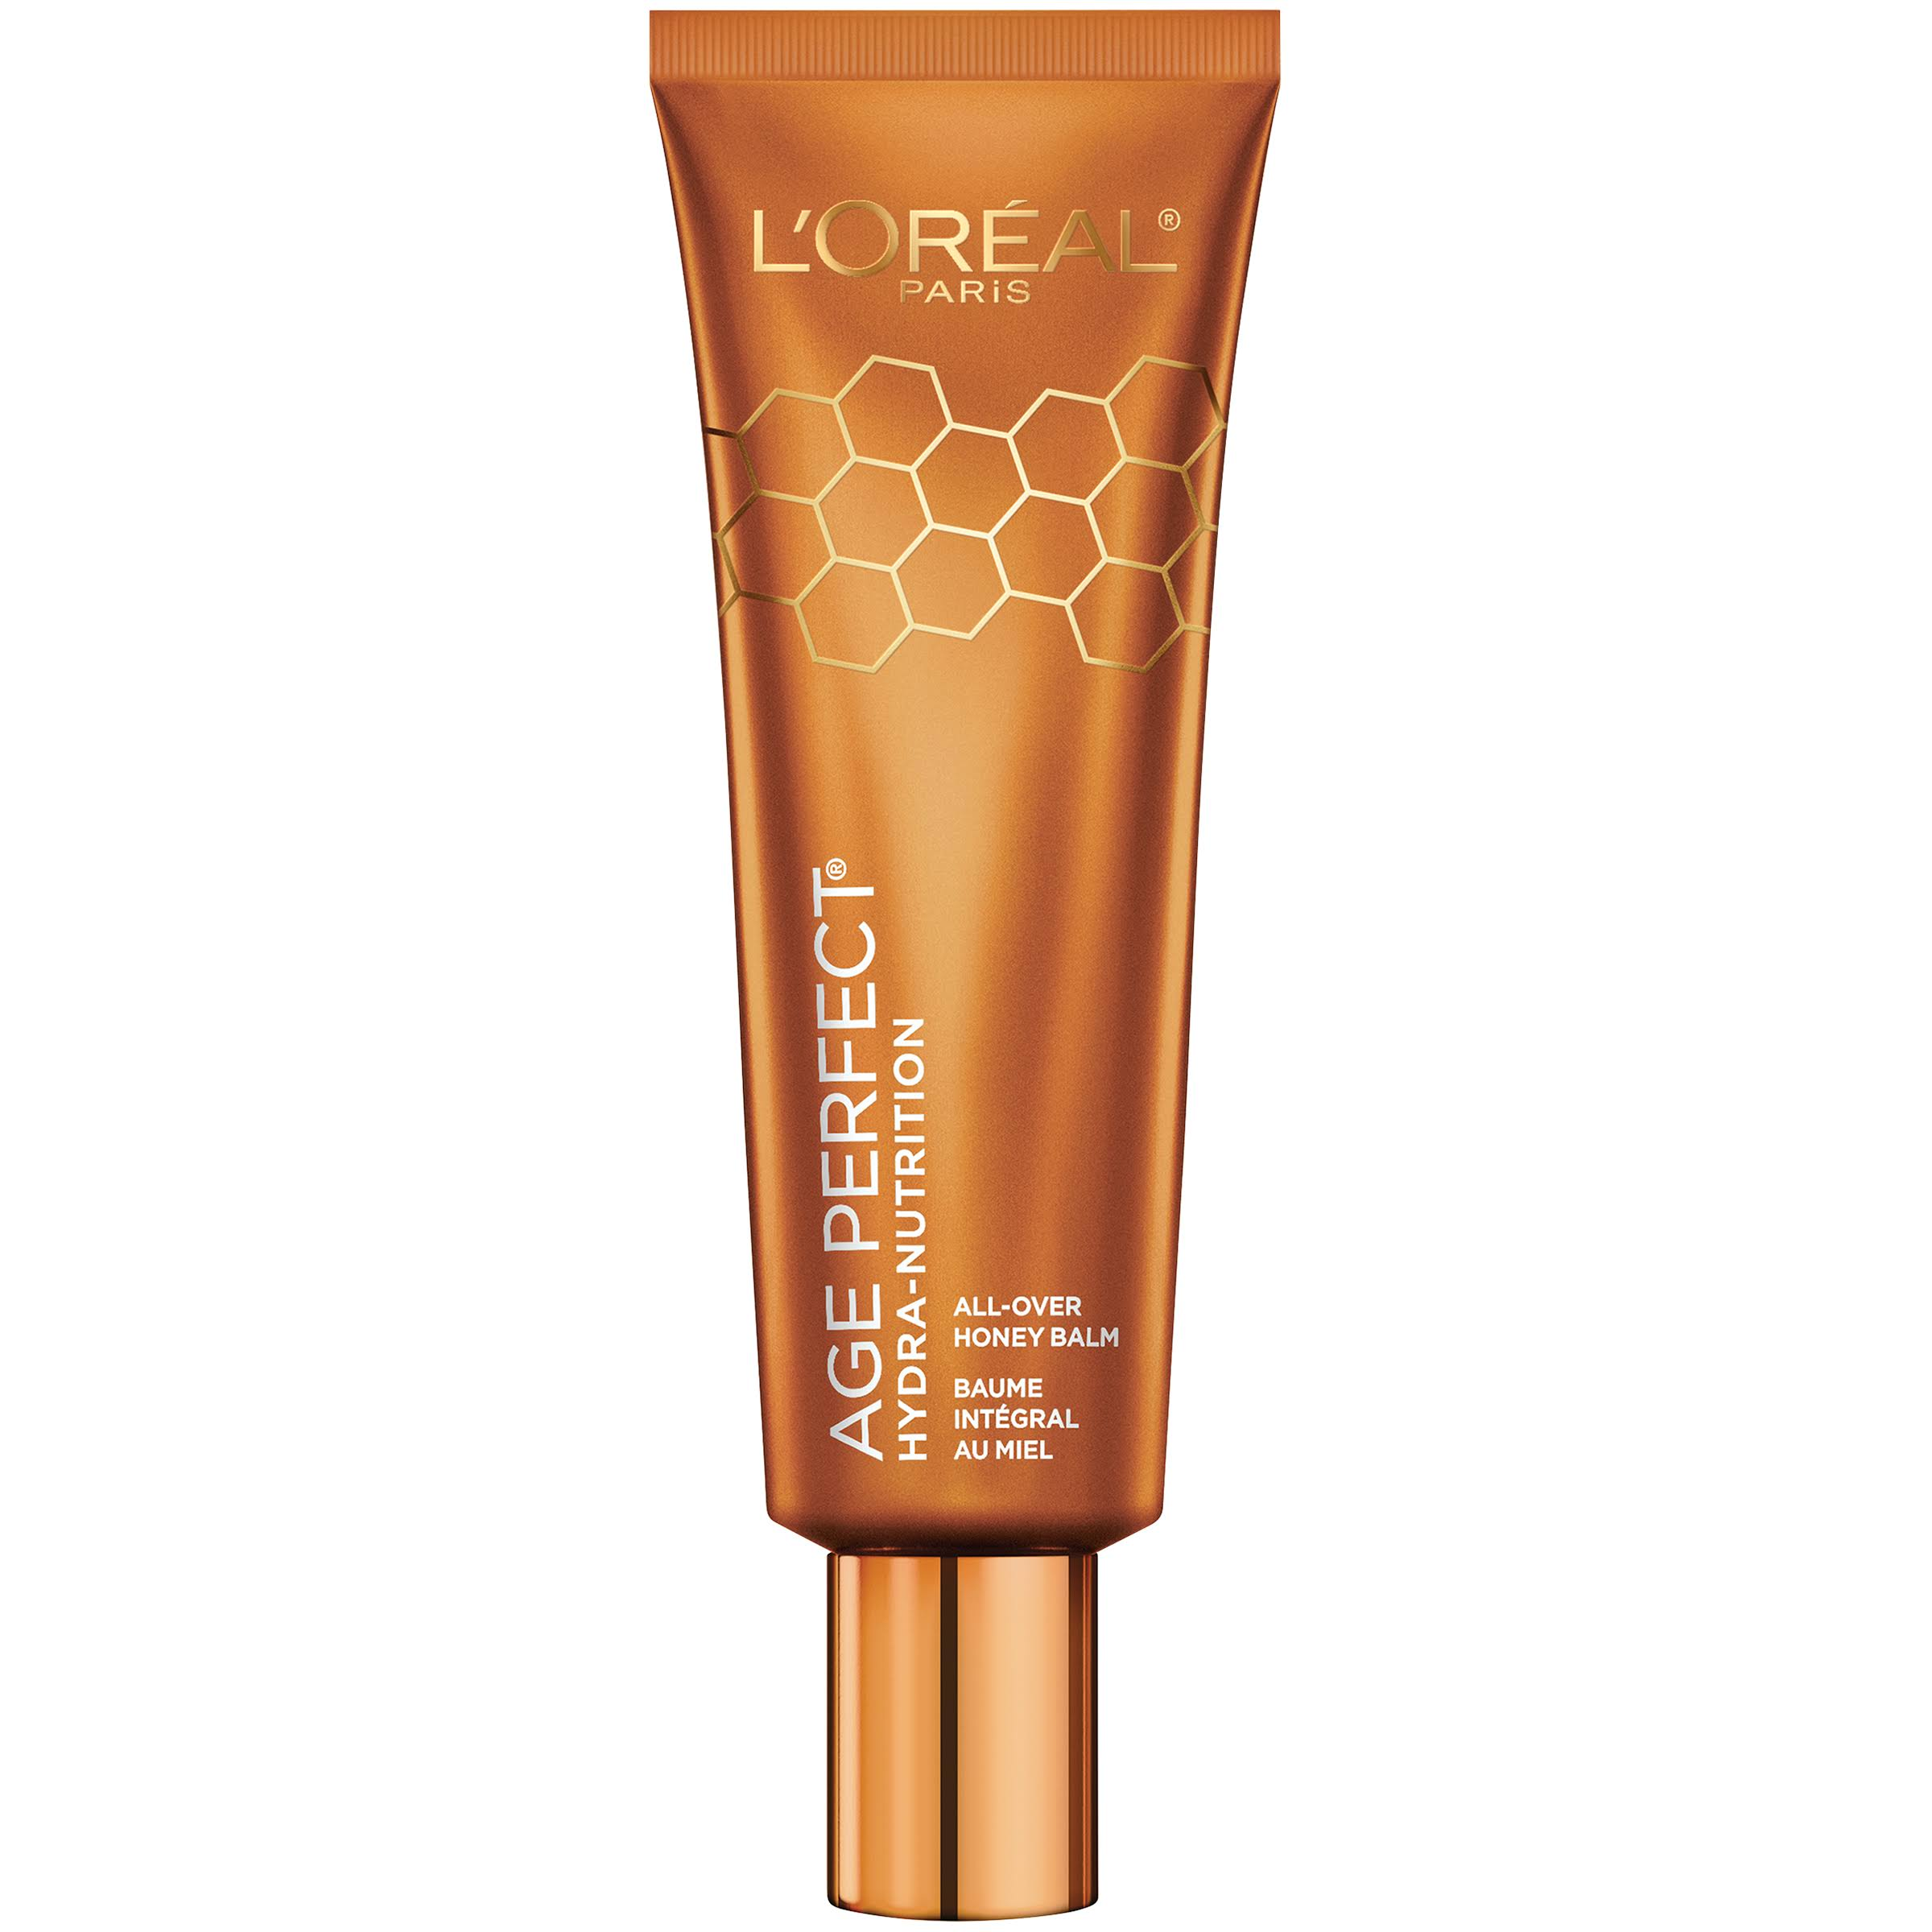 L'Oreal Paris Age Perfect Hydra Nutrition All-Over Honey Balm - 50ml